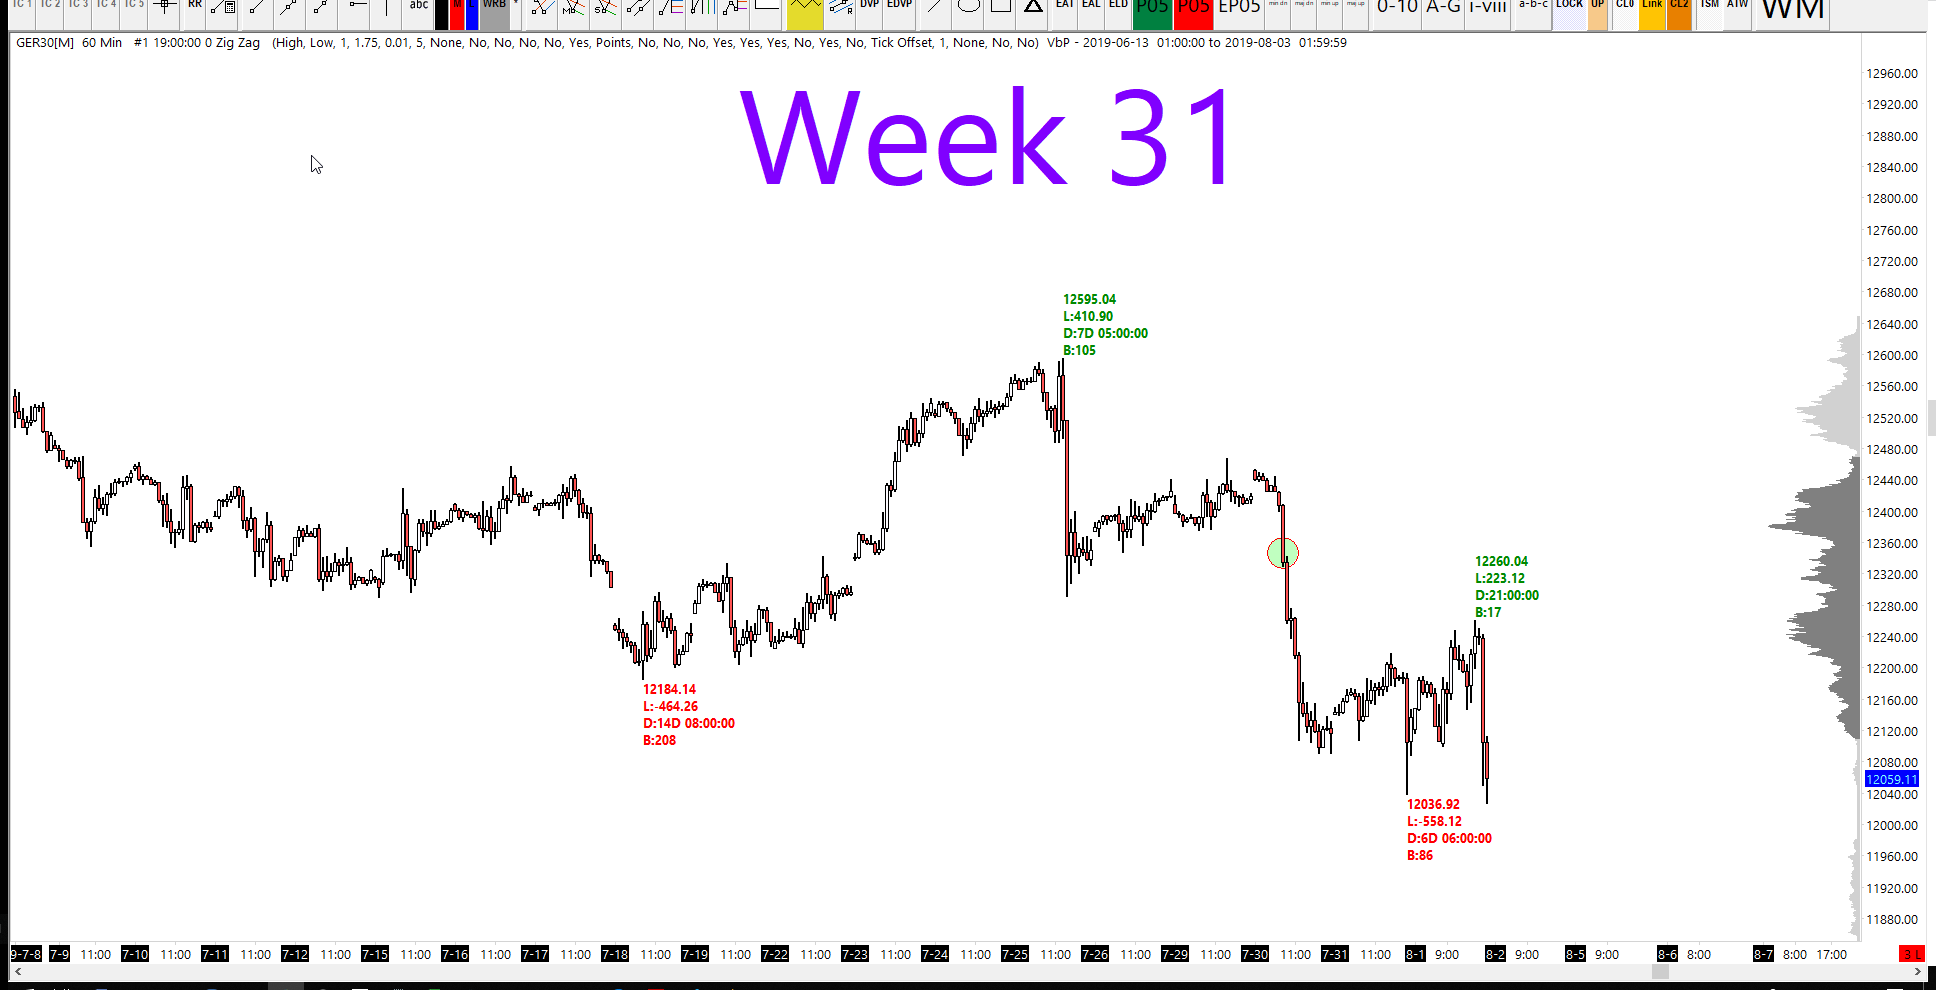 Week 32 2019 - DAX Technical Analysis | TheDaxTrader co uk